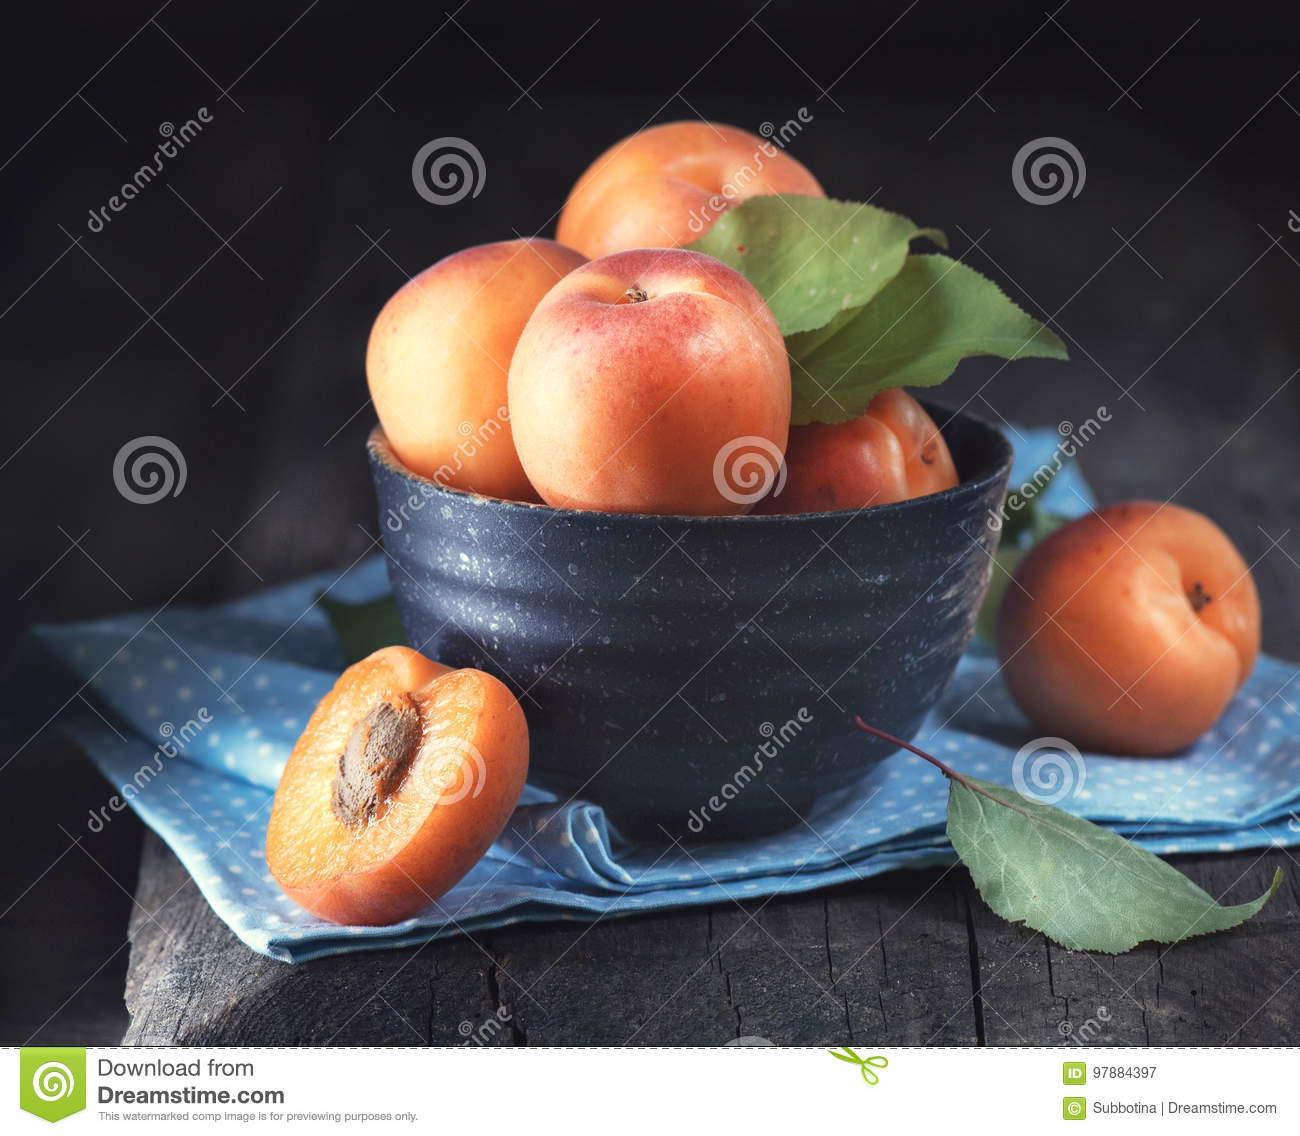 Apricots. Closeup of fresh organic apricot fruits in a bowl